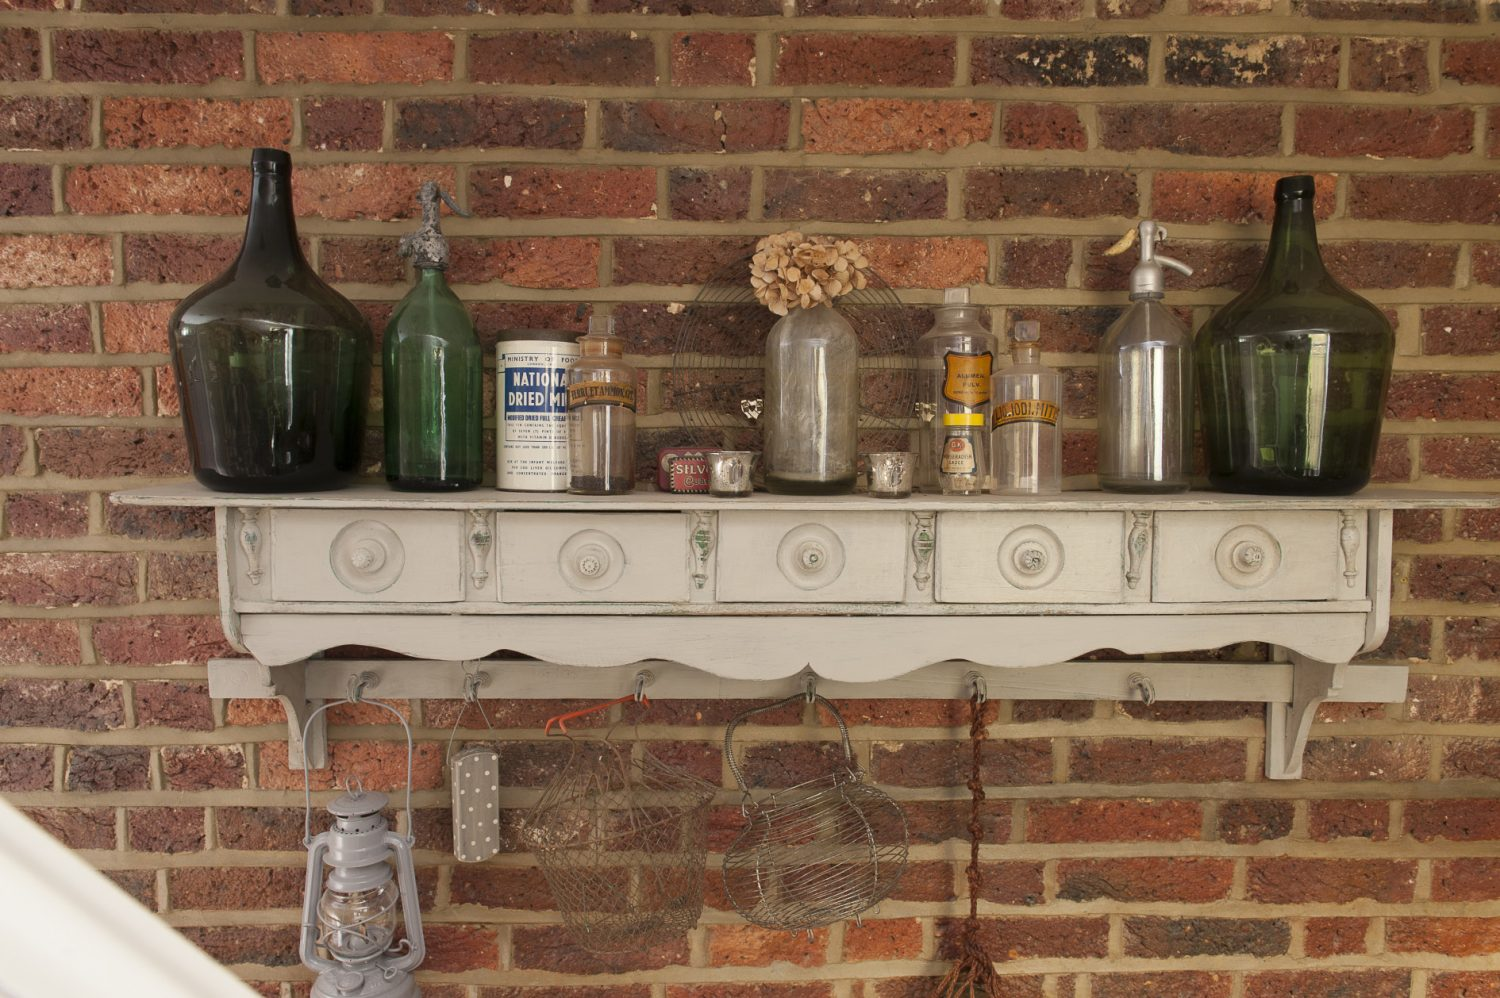 On the way up to the ground floor visitors pass a wooden case of old soda siphon bottles and a pretty drawered shelf on which stands a collection of soda siphons and some fat green bottles